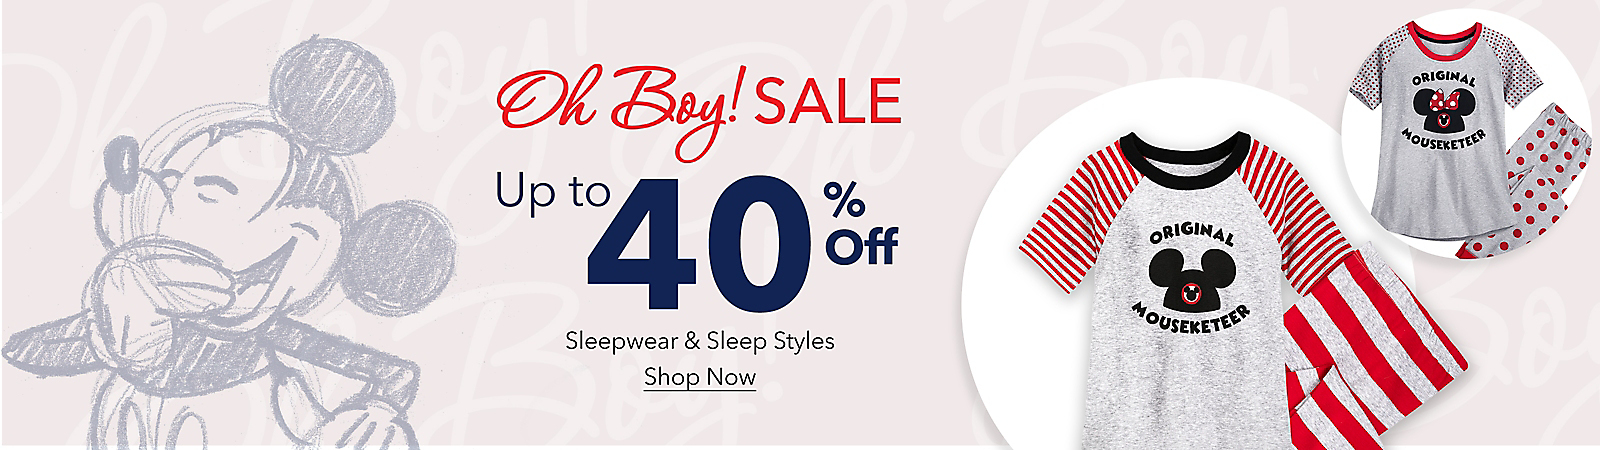 Oh Boy! Sale Up to 40% Off T-Shirts, Sleepwear & More